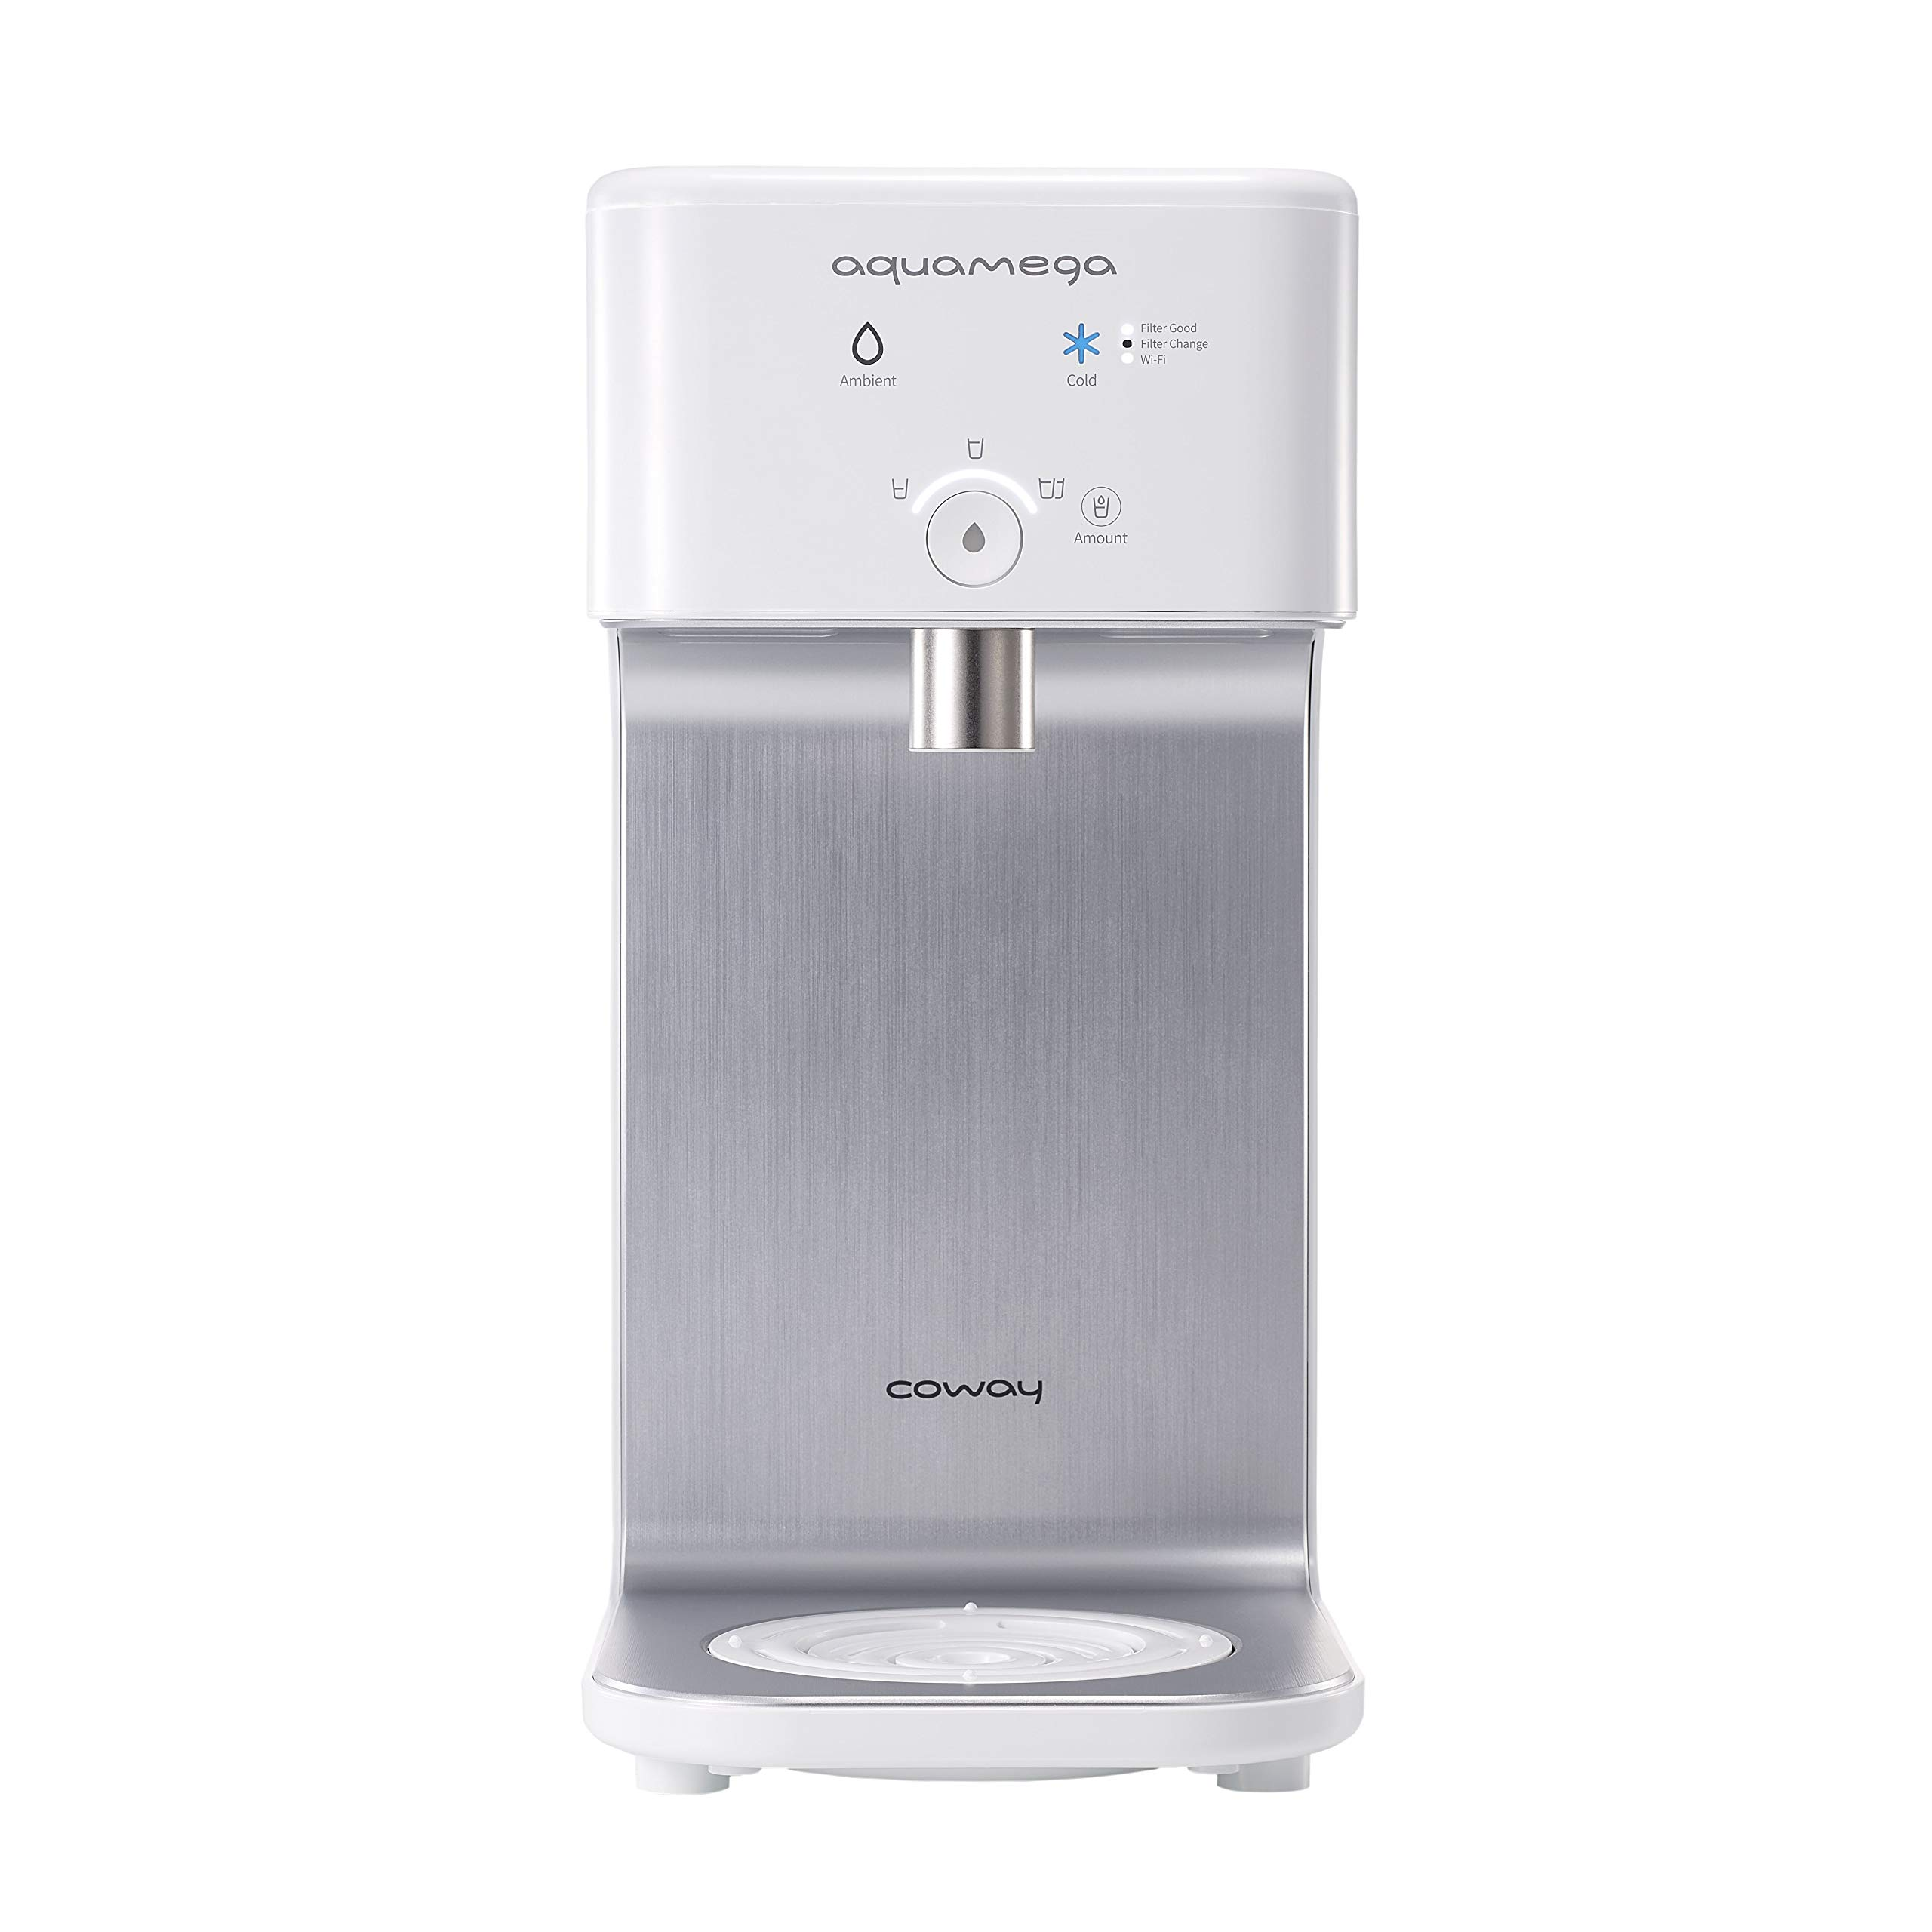 Coway Aquamega 200C Smart Cold Water Purifier, 7.1 x 16.5 x 14.7, White by Coway